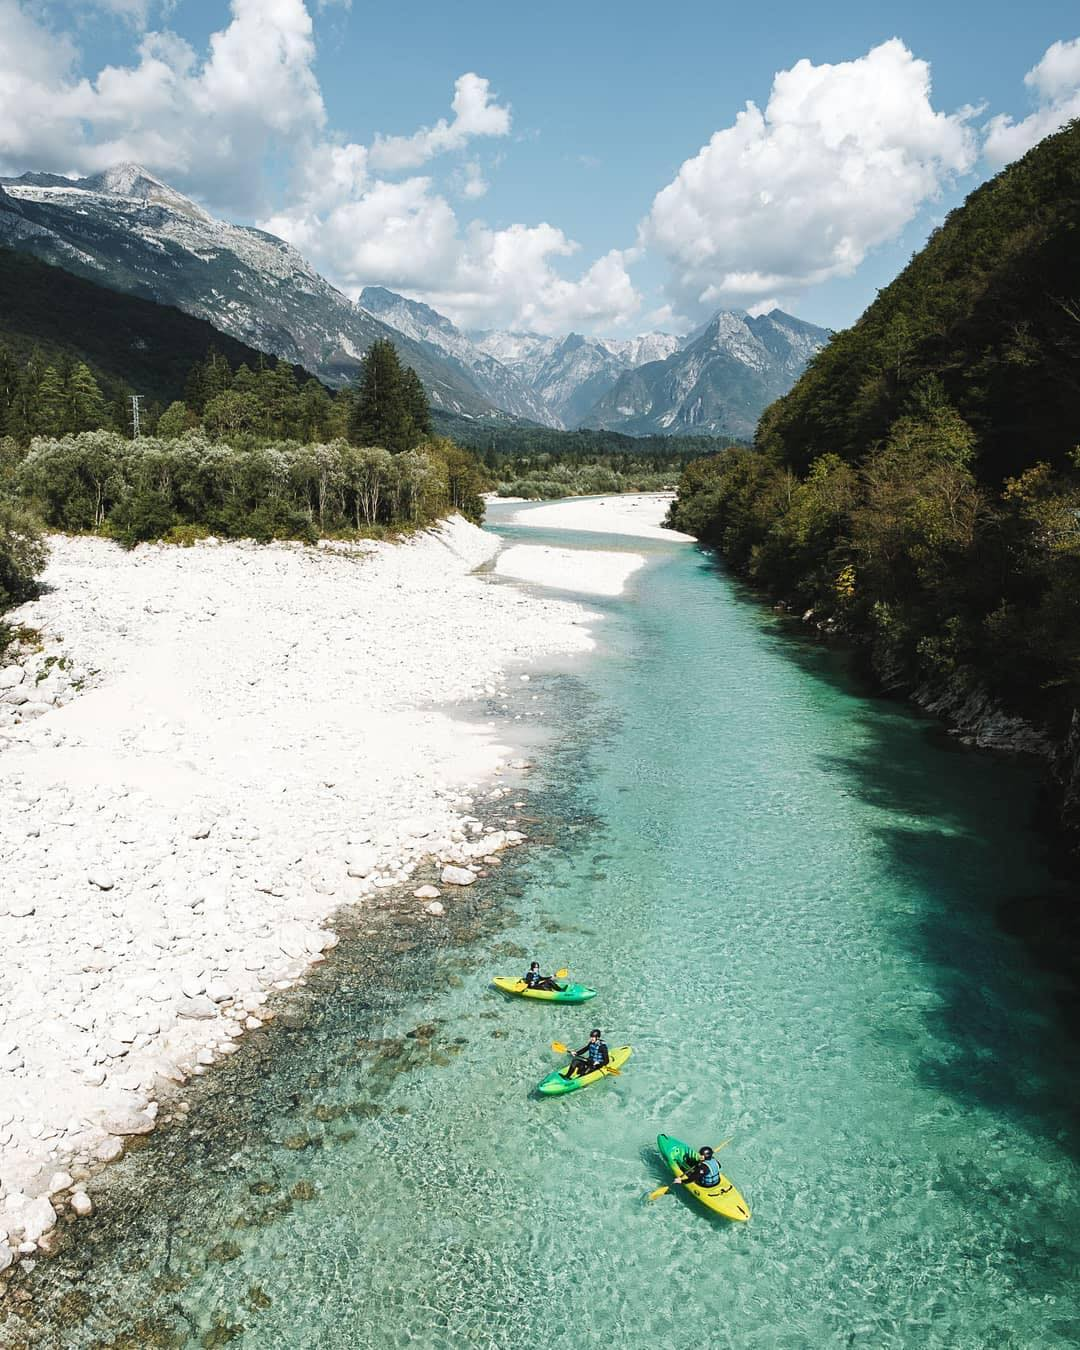 What could be more exciting than kayaking in one of the most beautiful Alpine rivers?  This very clean alpine river Soča is surely one of the must see places in our lovely land. Its source lies in the Trenta Valley in the Julian Alps in northwestern Slovenia. With such turquoise color it is one of the most beautiful rivers in Slovenia.  Keep it clean!  Thanks @allaperto for sharing your photo with #ifeelsLOVEnia.